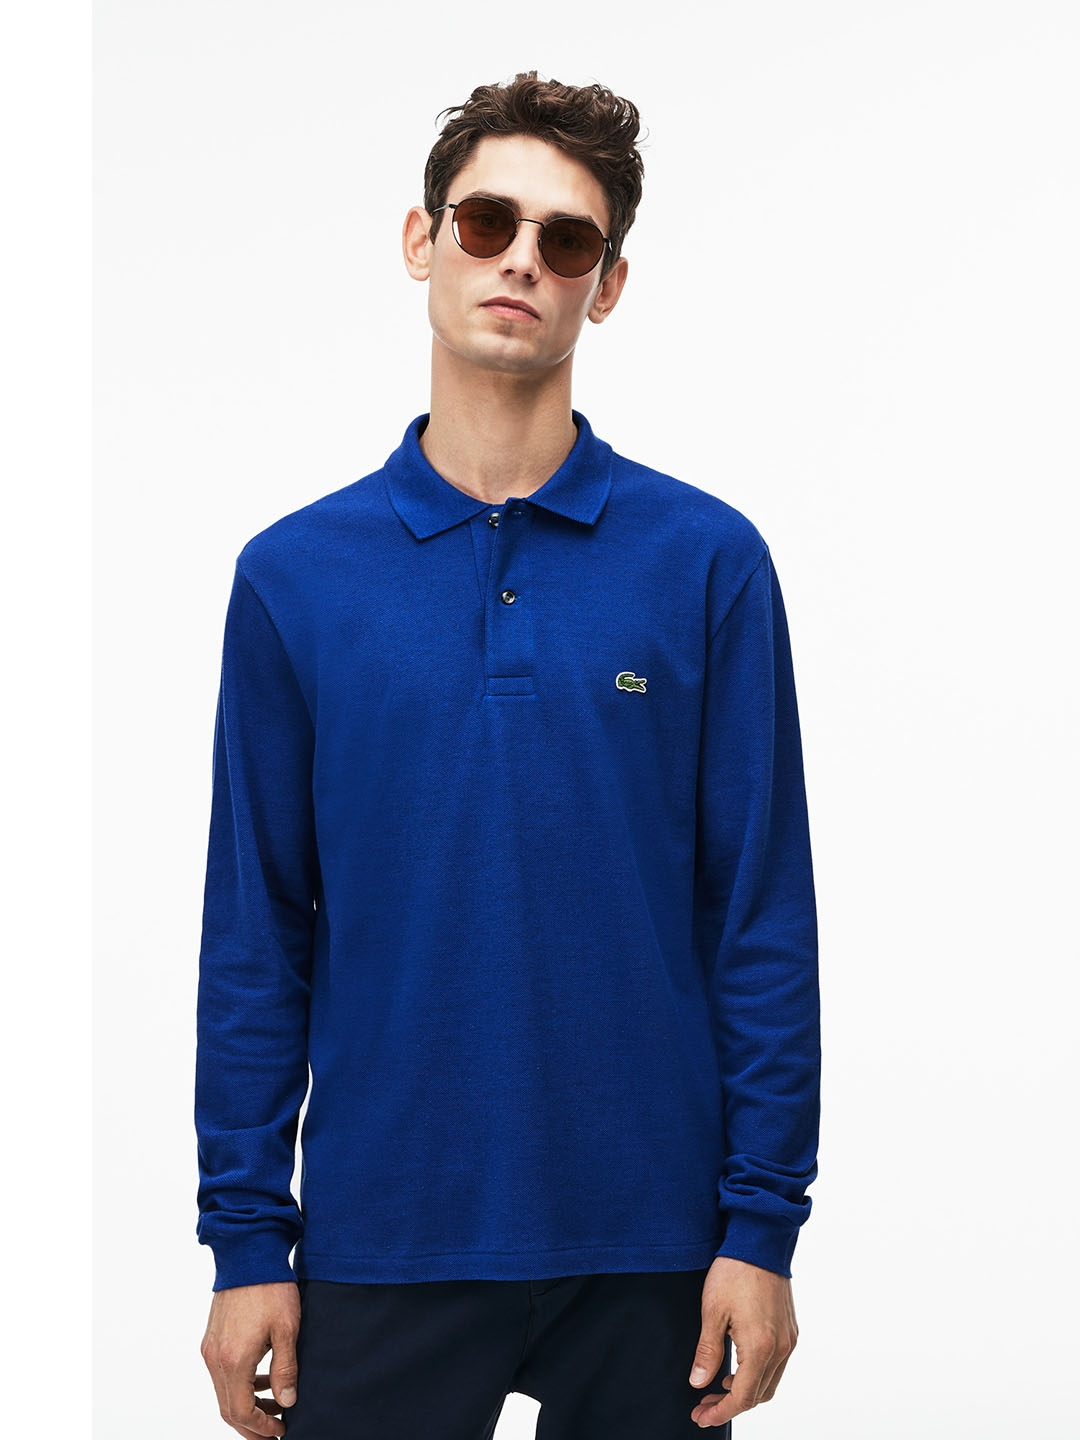 4f41a91e Lacoste Men Blue Solid Classic Fit Long-Sleeve Polo In Marl Petite Pique